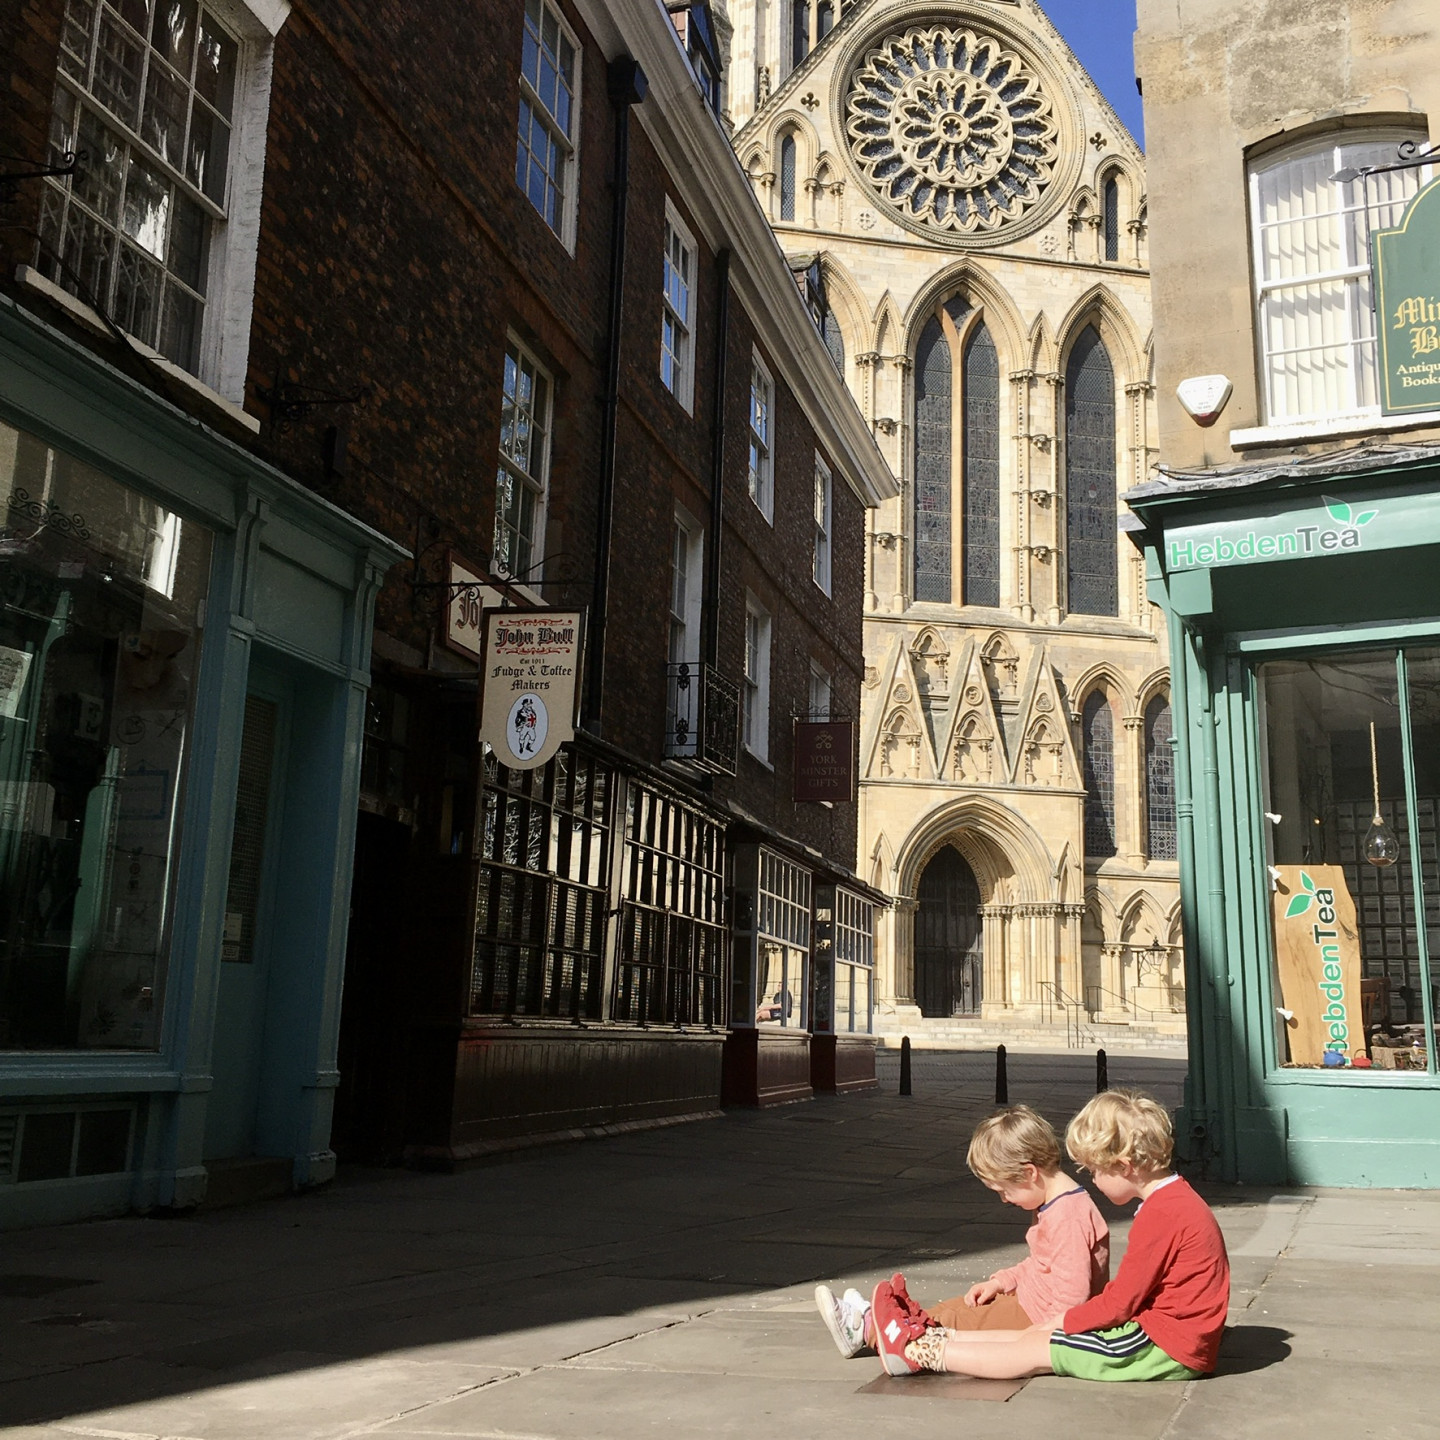 This photo was taken on Tuesday 7th April. I was trying to get a snap of the Minster peeping through and suddenly my sons ran in and sat like this. I thought it was a lovely moment of quiet friendship in the deserted streets of York.  © Laura Bird